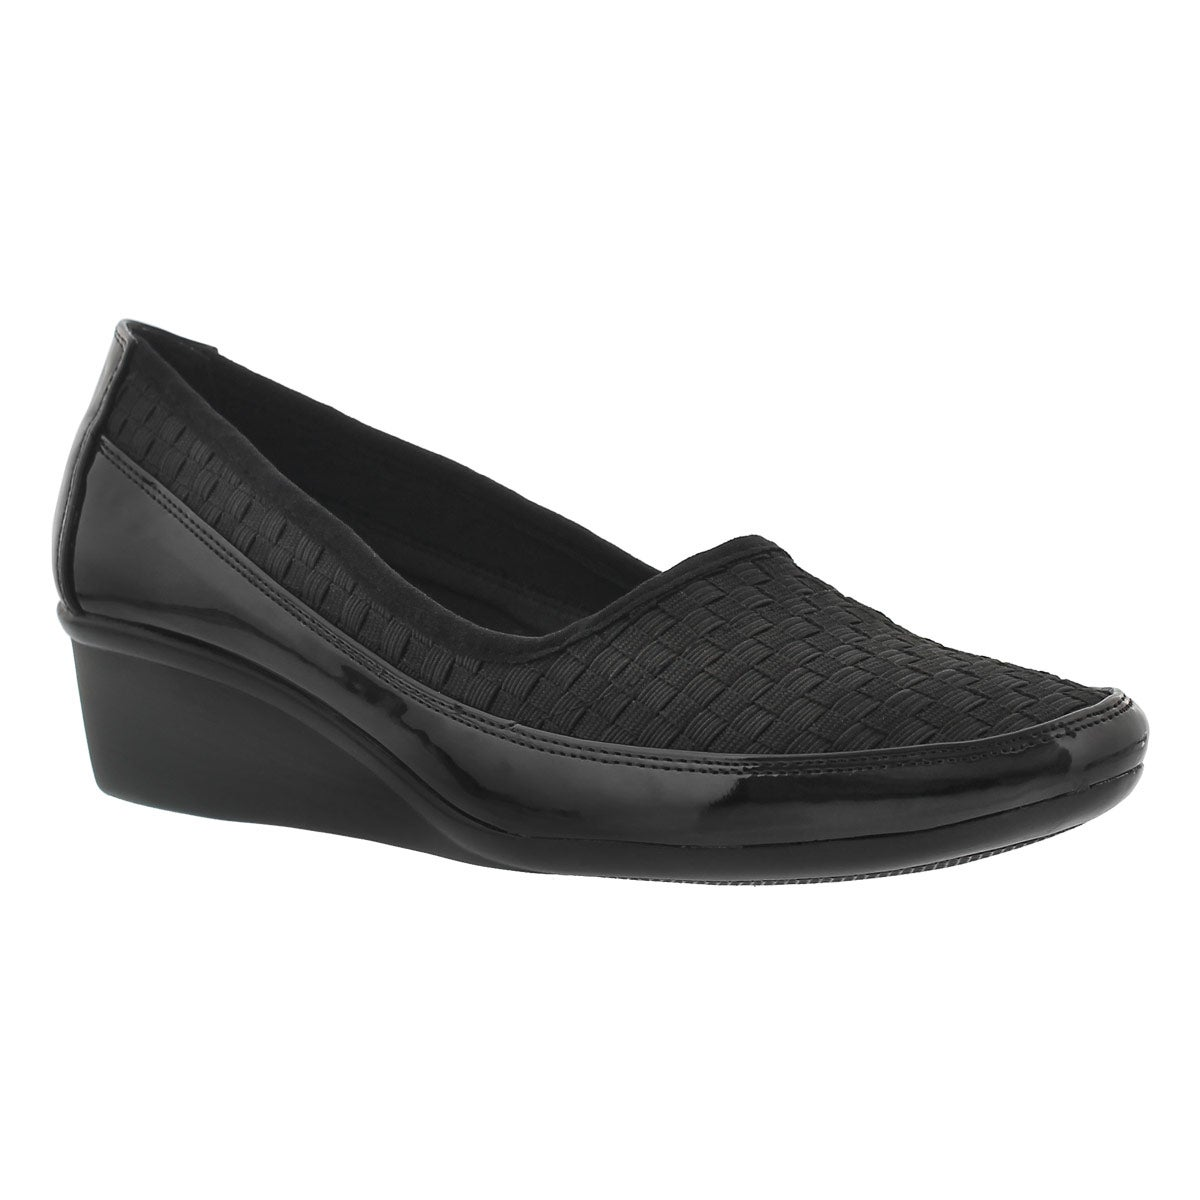 Women's DUSTI 2 black slip on casual wedges